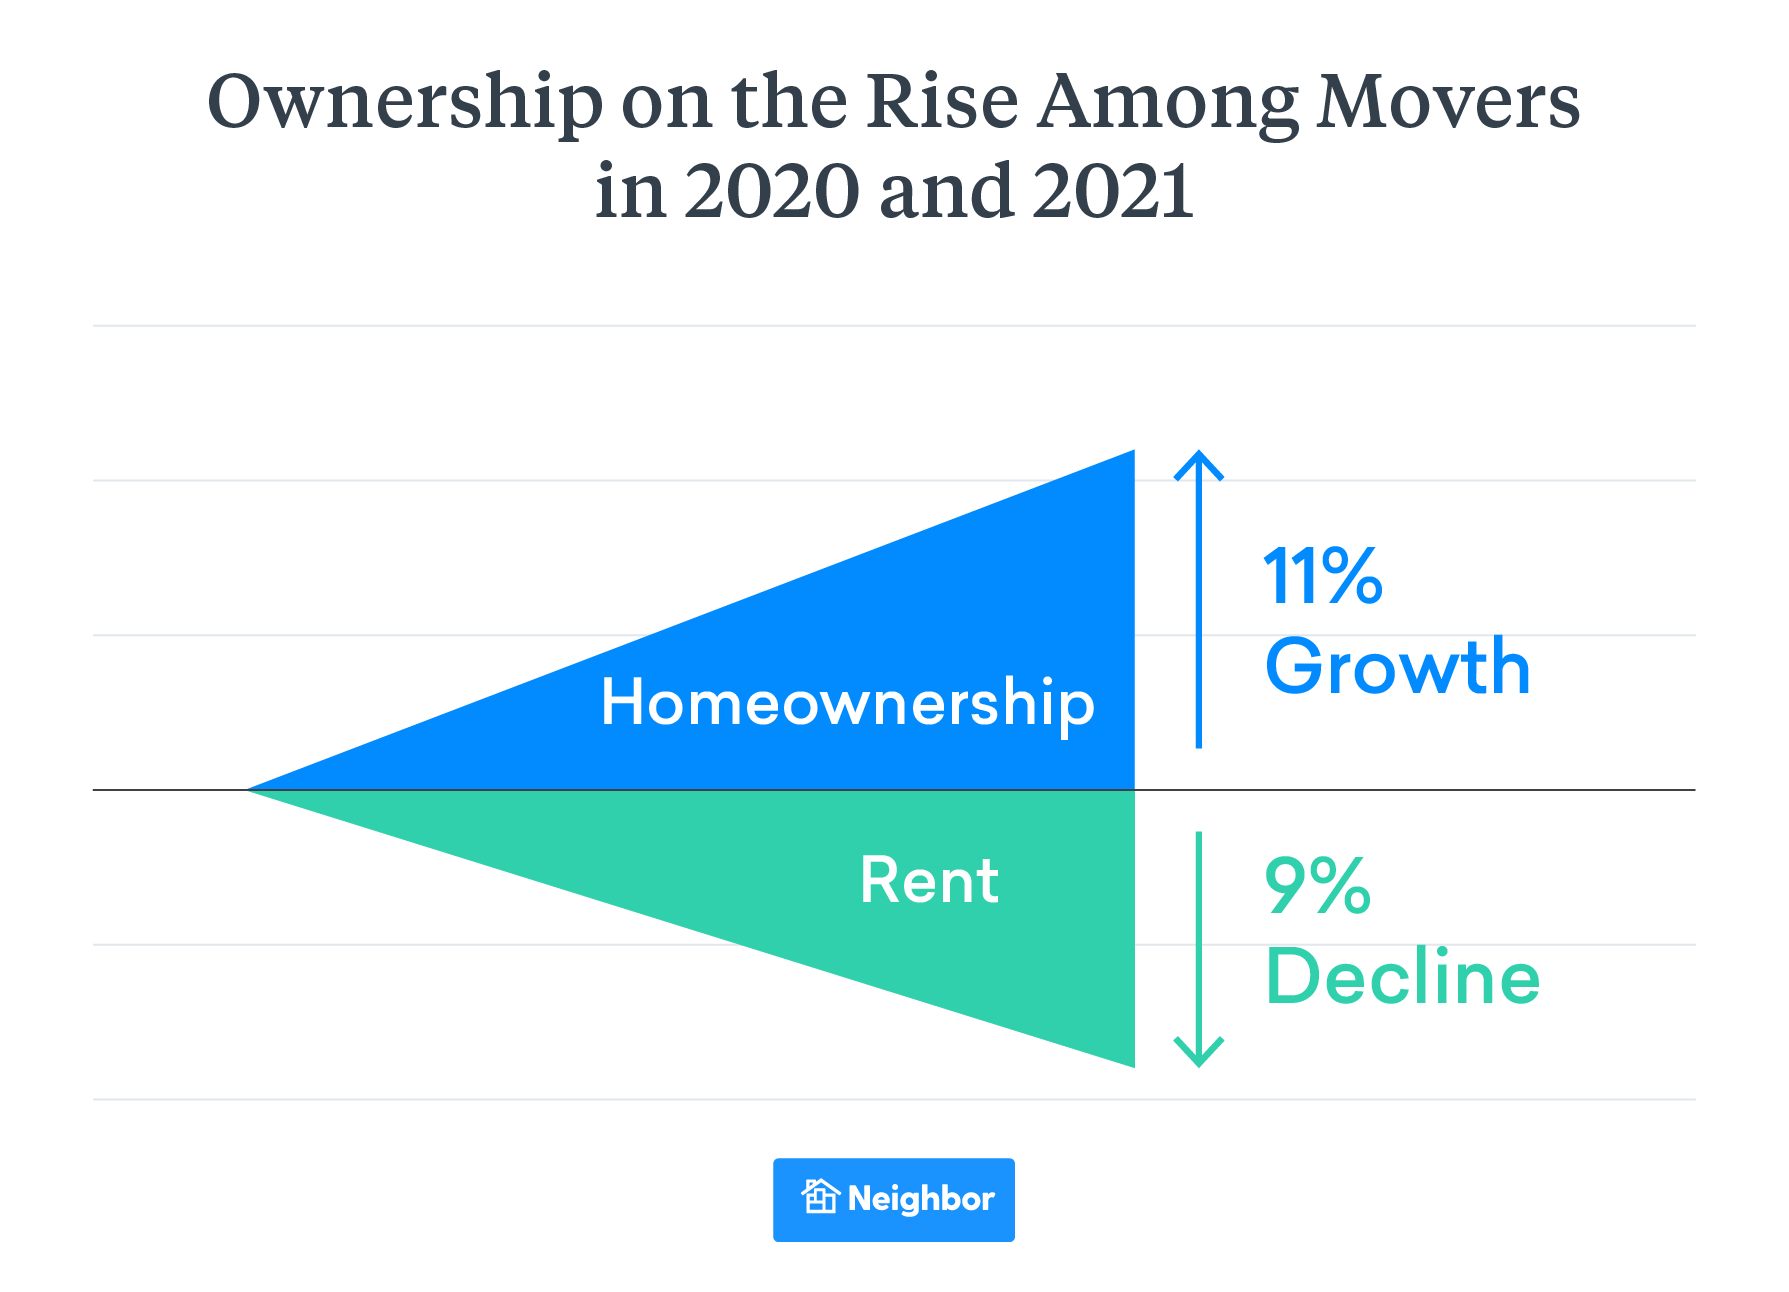 Home Ownership Up 11% Among Movers in 2020 and 2021